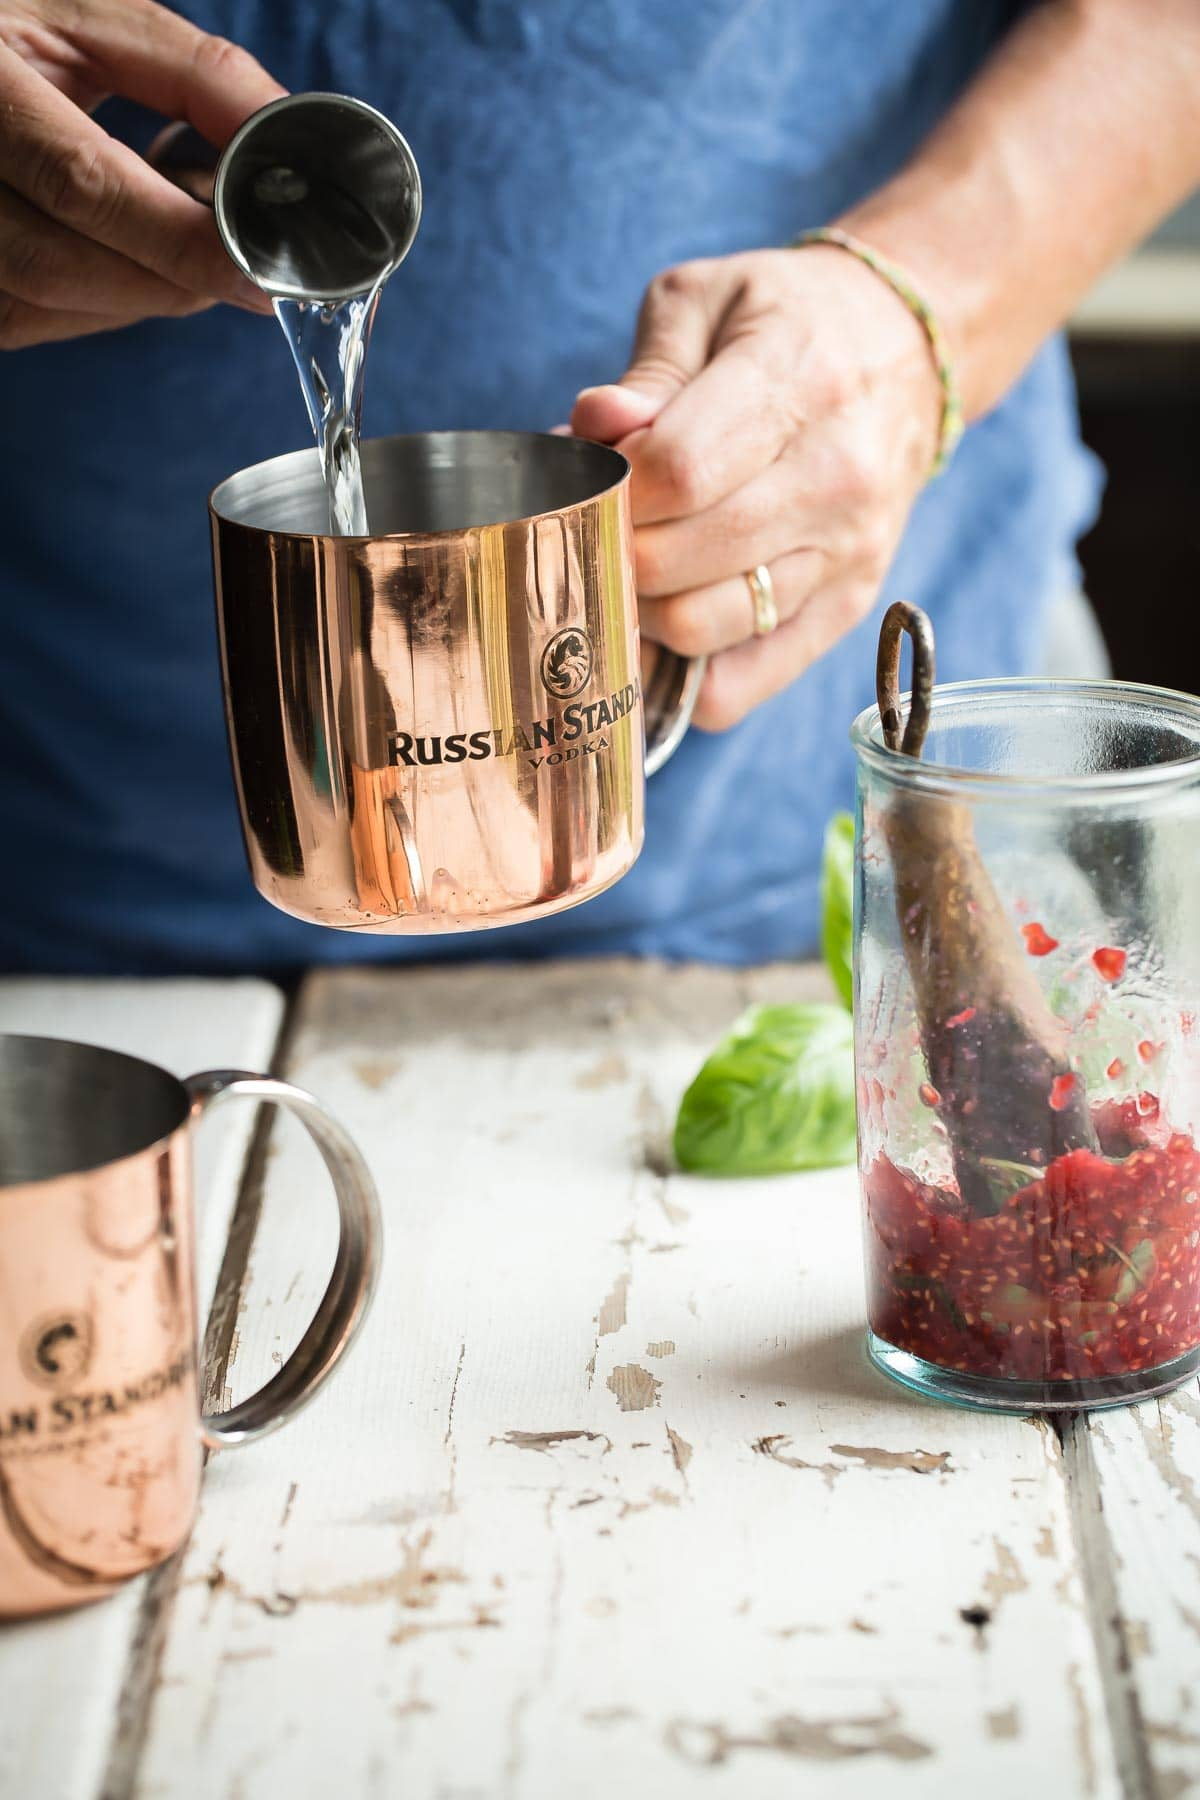 A traditional Moscow Mule with a fruity herby twist. Raspberry basil muddle, vodka, lime and ginger beer makes this the perfect boozy white sandy beach drink.